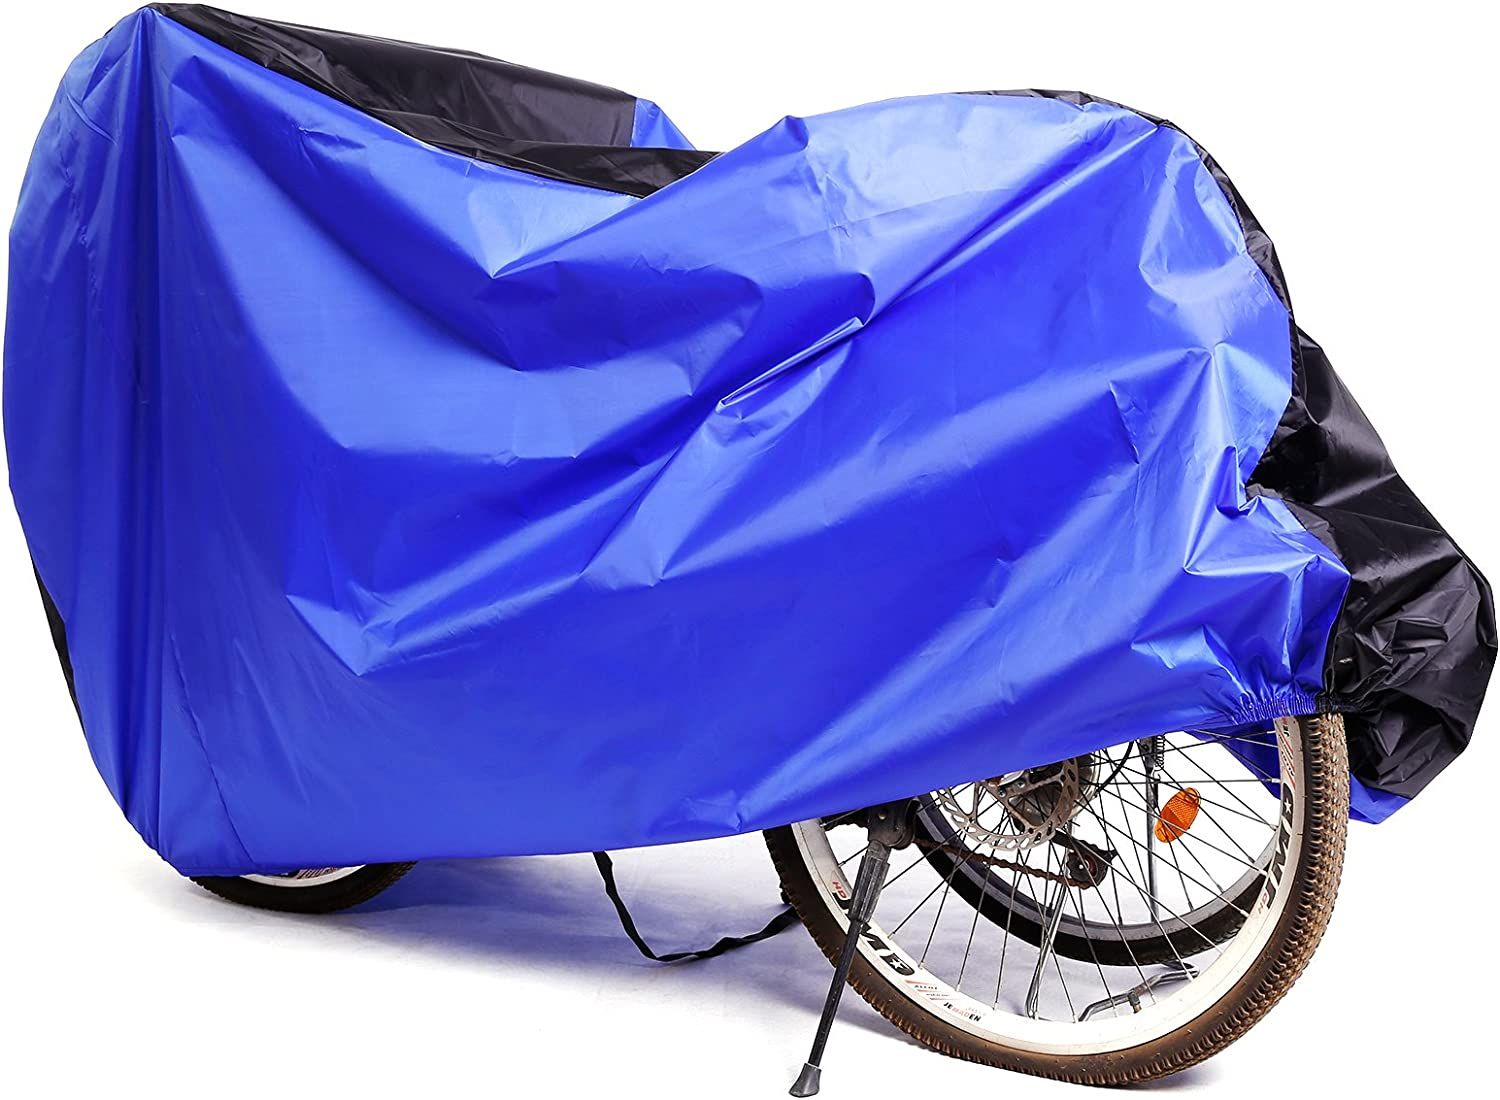 Hamimelon Universal Waterproof Bicycle Bike Cycle Cover Outdoor Rain Weather Resistant